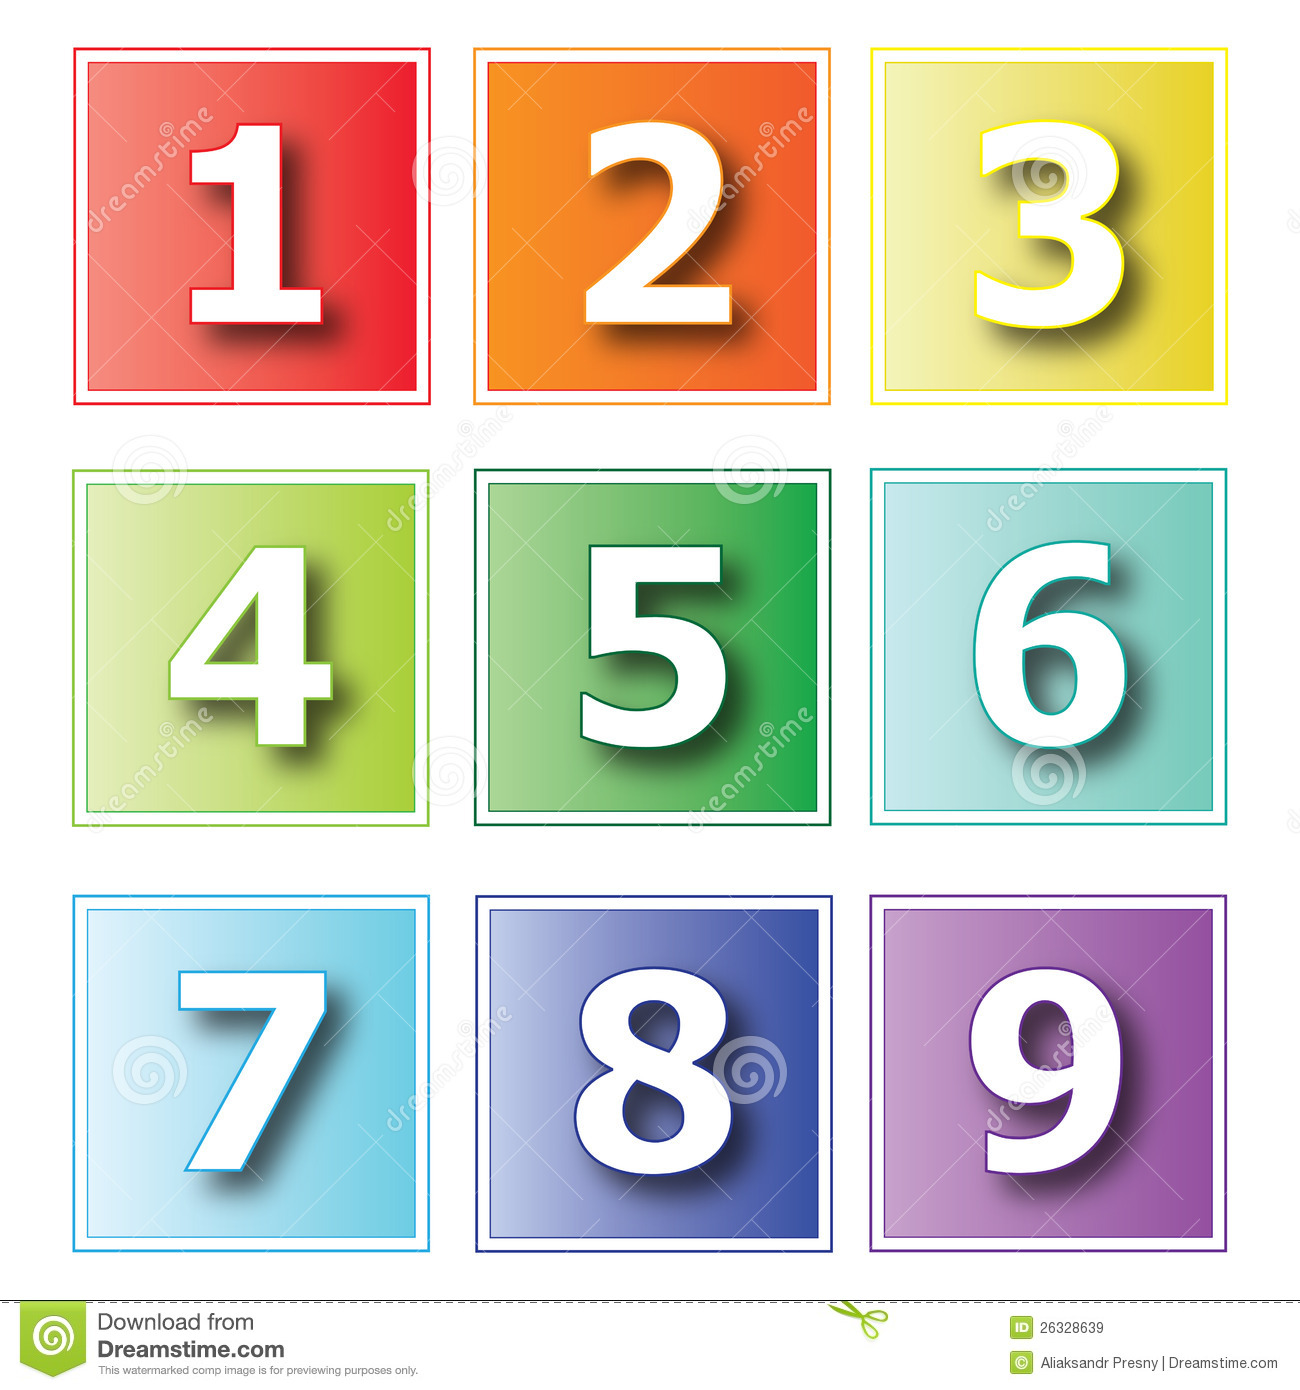 Icons Numbers Royalty Free Stock Images - Image: 26328639: www.dreamstime.com/royalty-free-stock-images-icons-numbers...